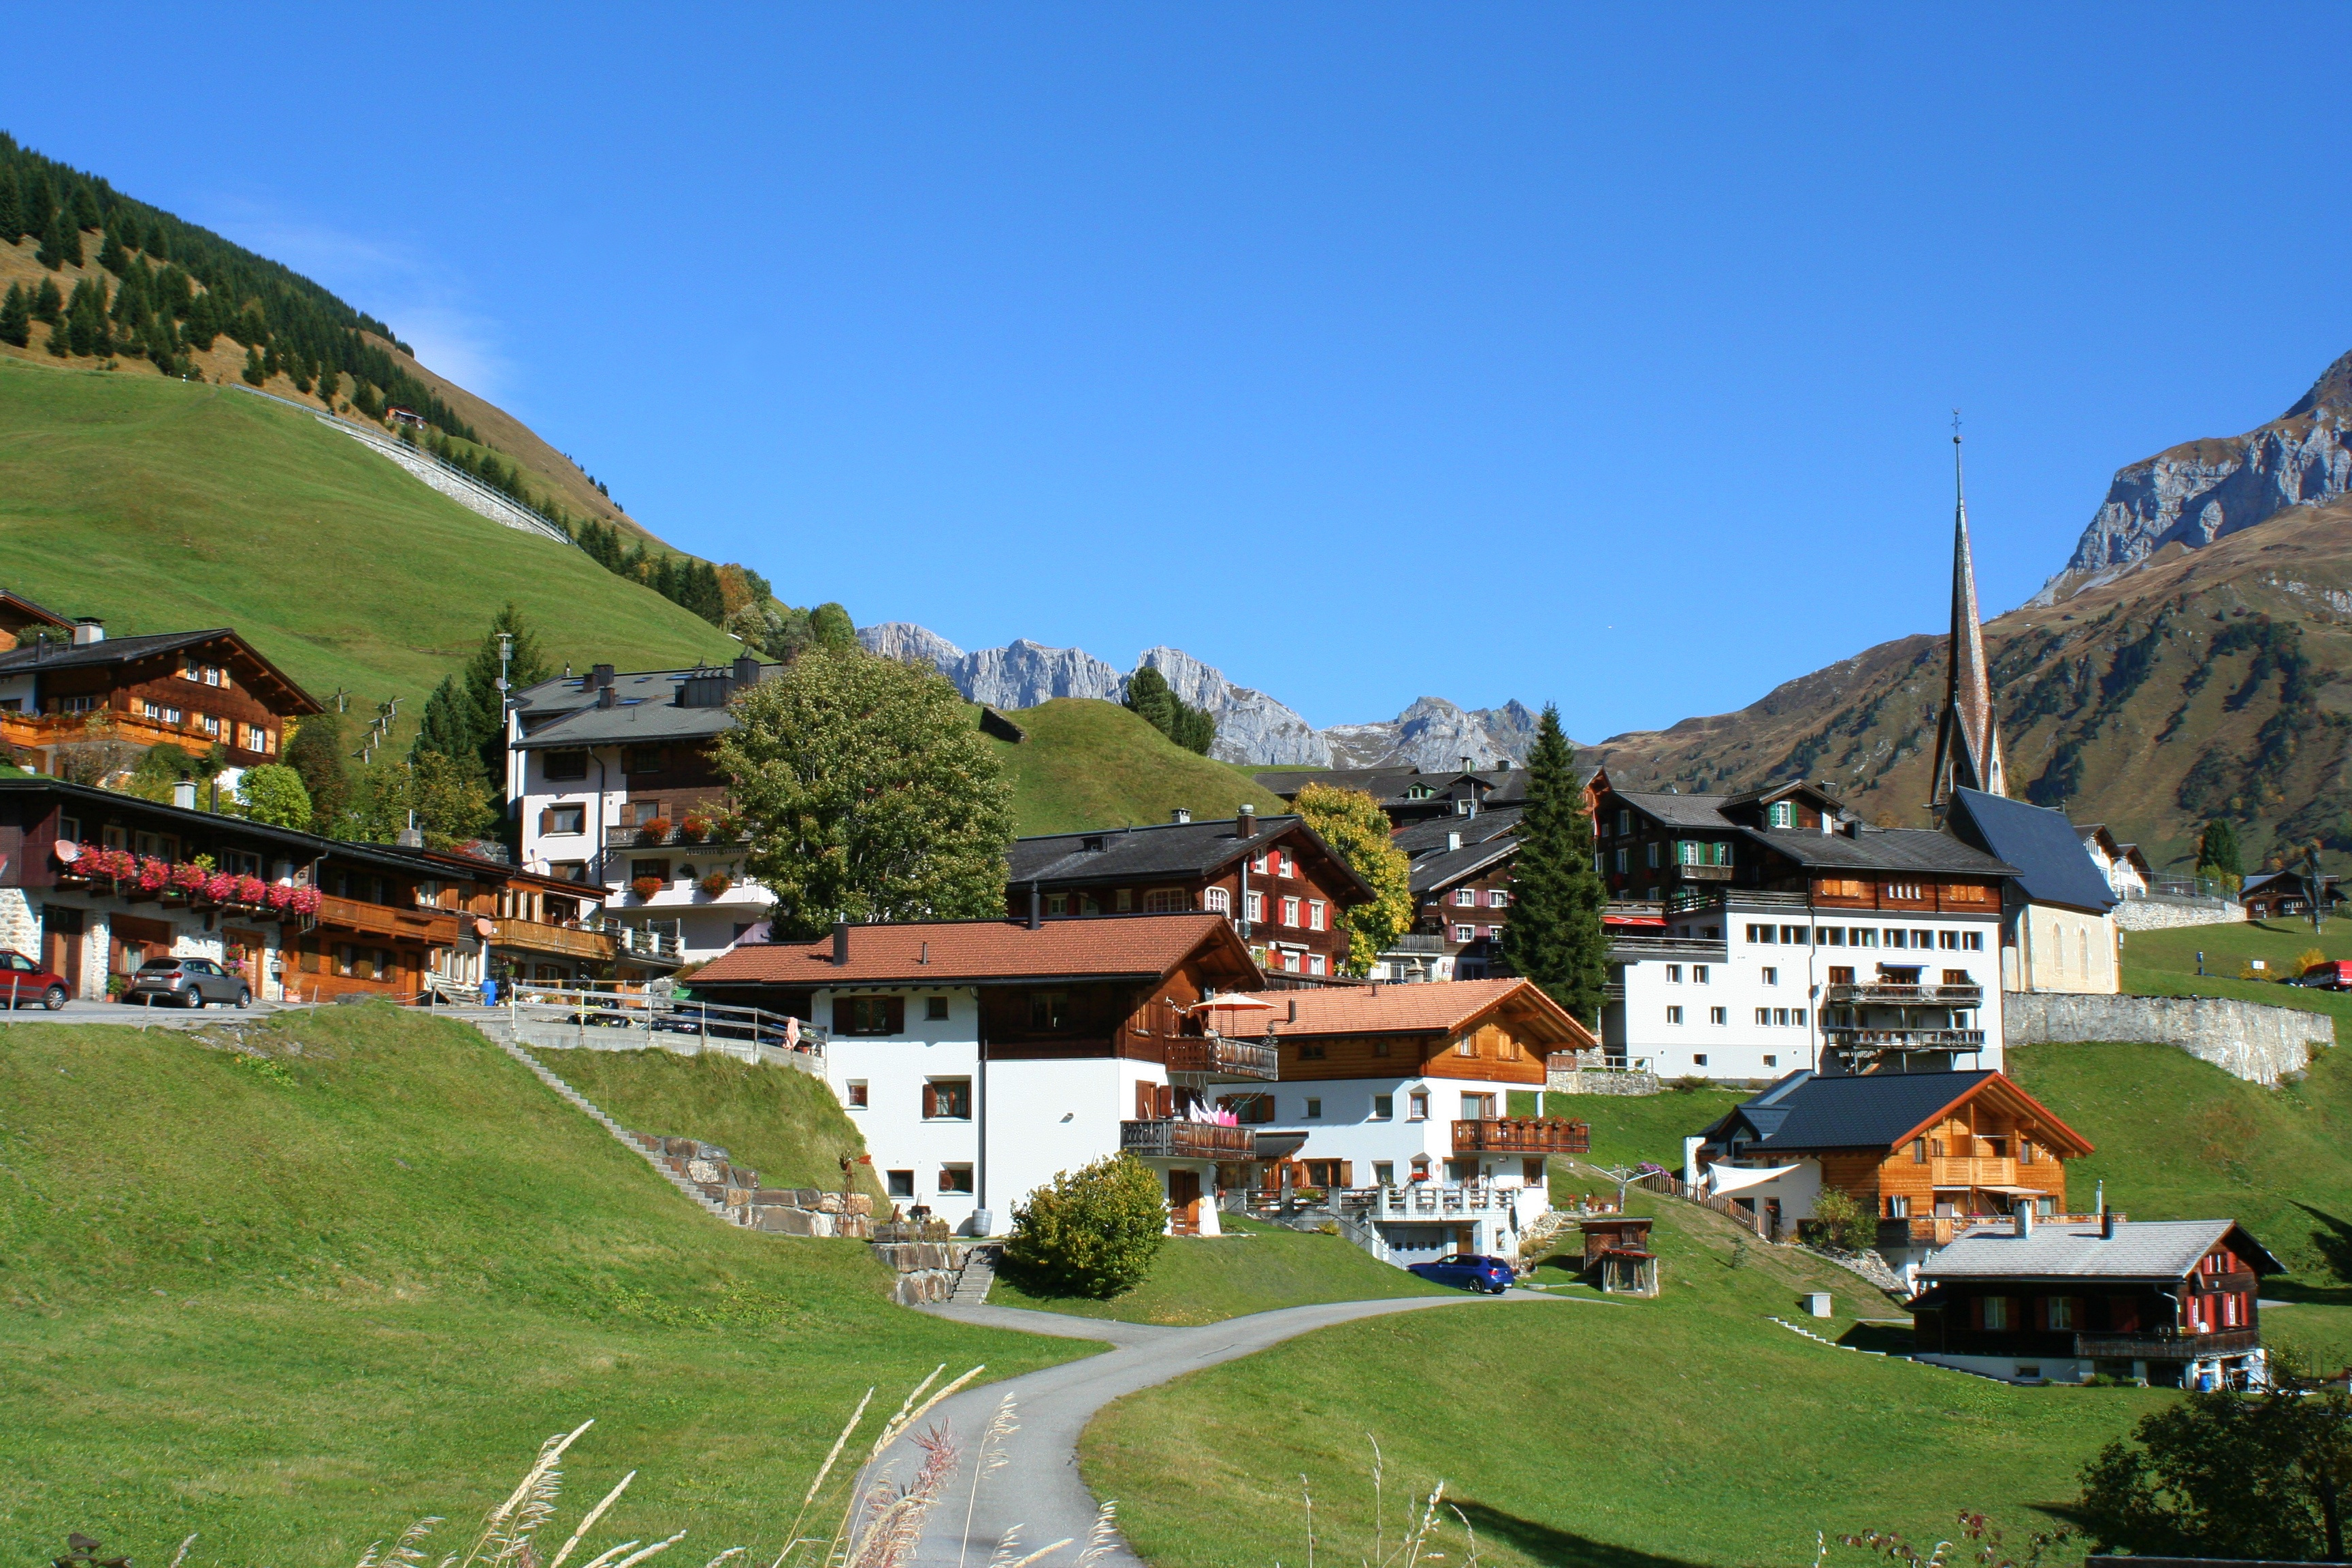 St. Antönien in the Prättigau with a local museum presenting the Walser culture of the valley with the same name